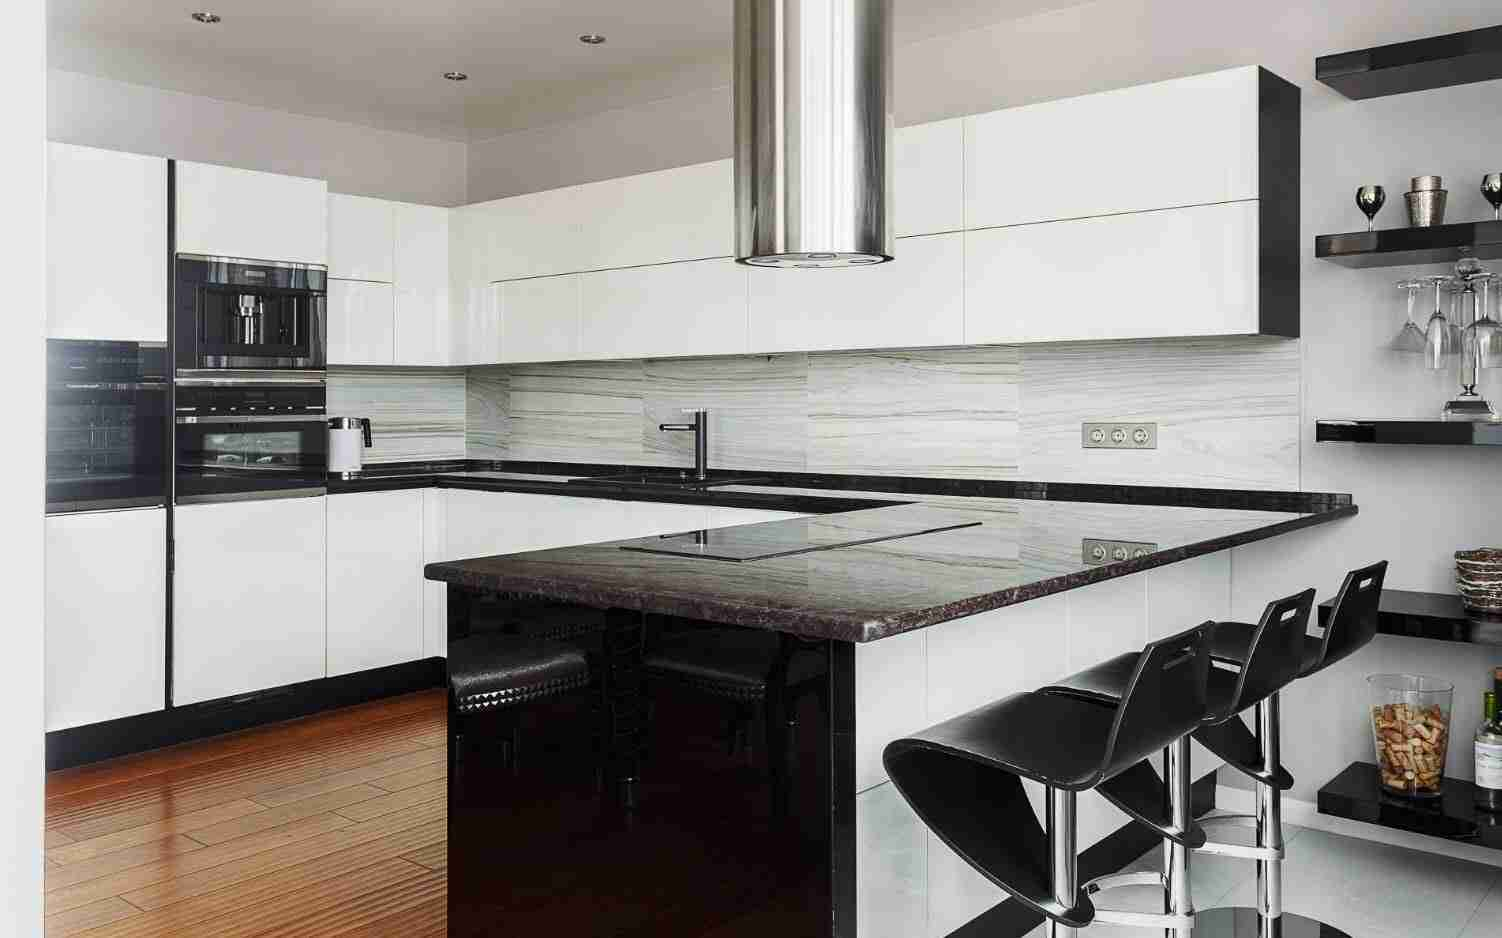 160 Square Feet Kitchen Design Ideas. Black glossy plastic coating for modern high-tech kitchen with round steel extractor